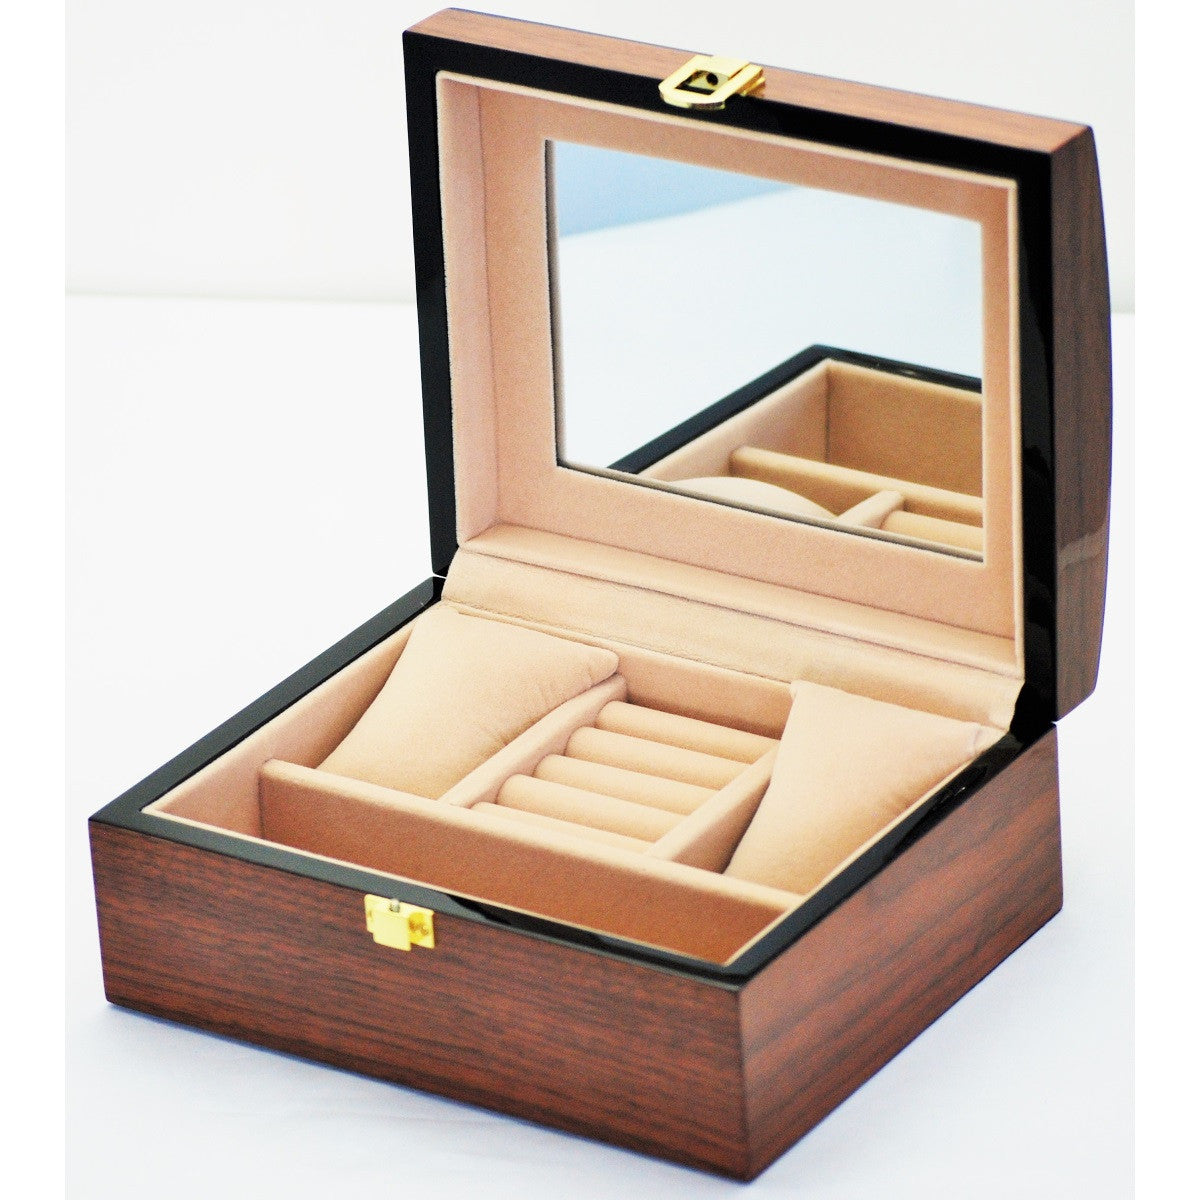 Pearl Time Jewellery Watch Box, Curved Top, Piano Brown Finish, 20cm